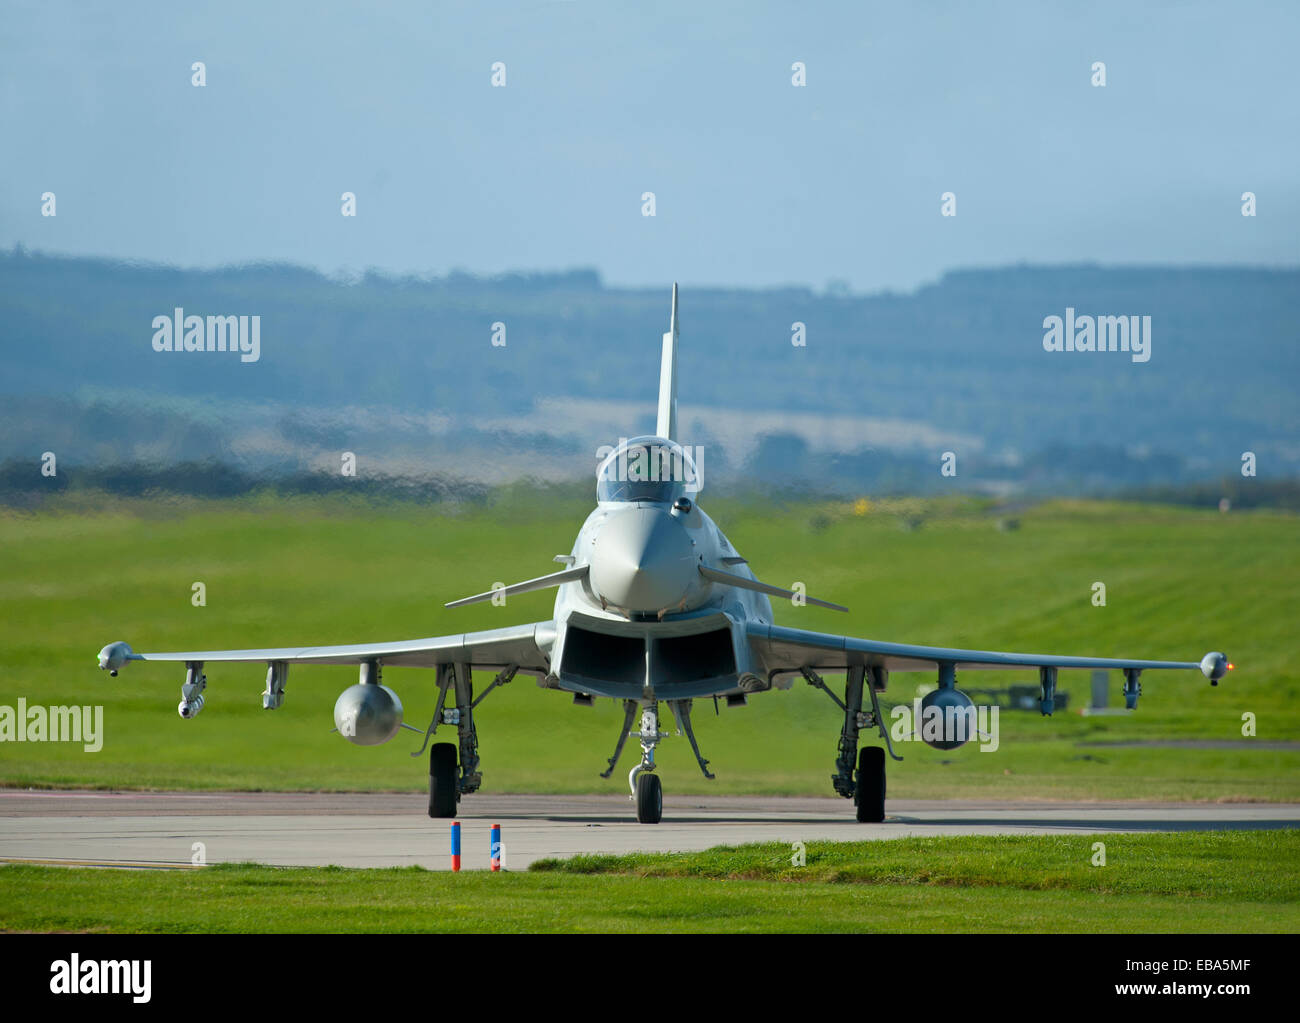 Eurofighter Typhoon FRG4 Military Fast Jet Fighter on taxiway at RAF Lossiemouth.  SCO 9244 - Stock Image